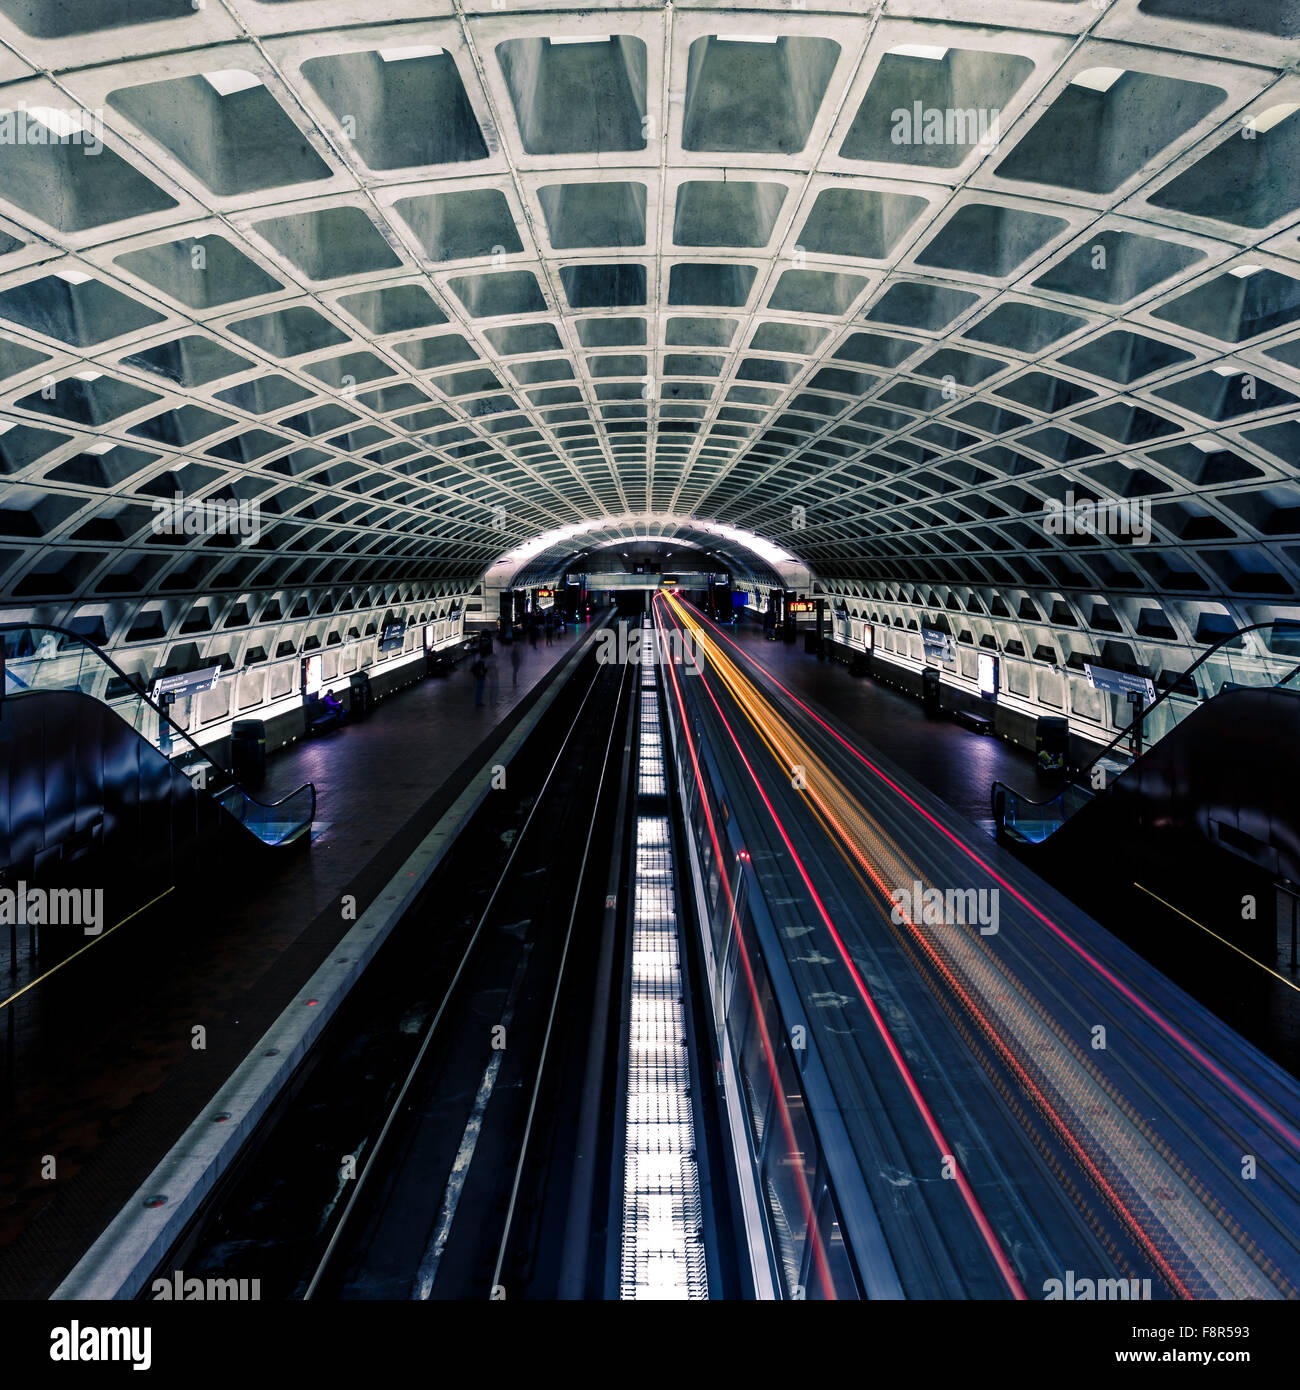 Light trail motion blur of commuter train at subway station - Stock Image